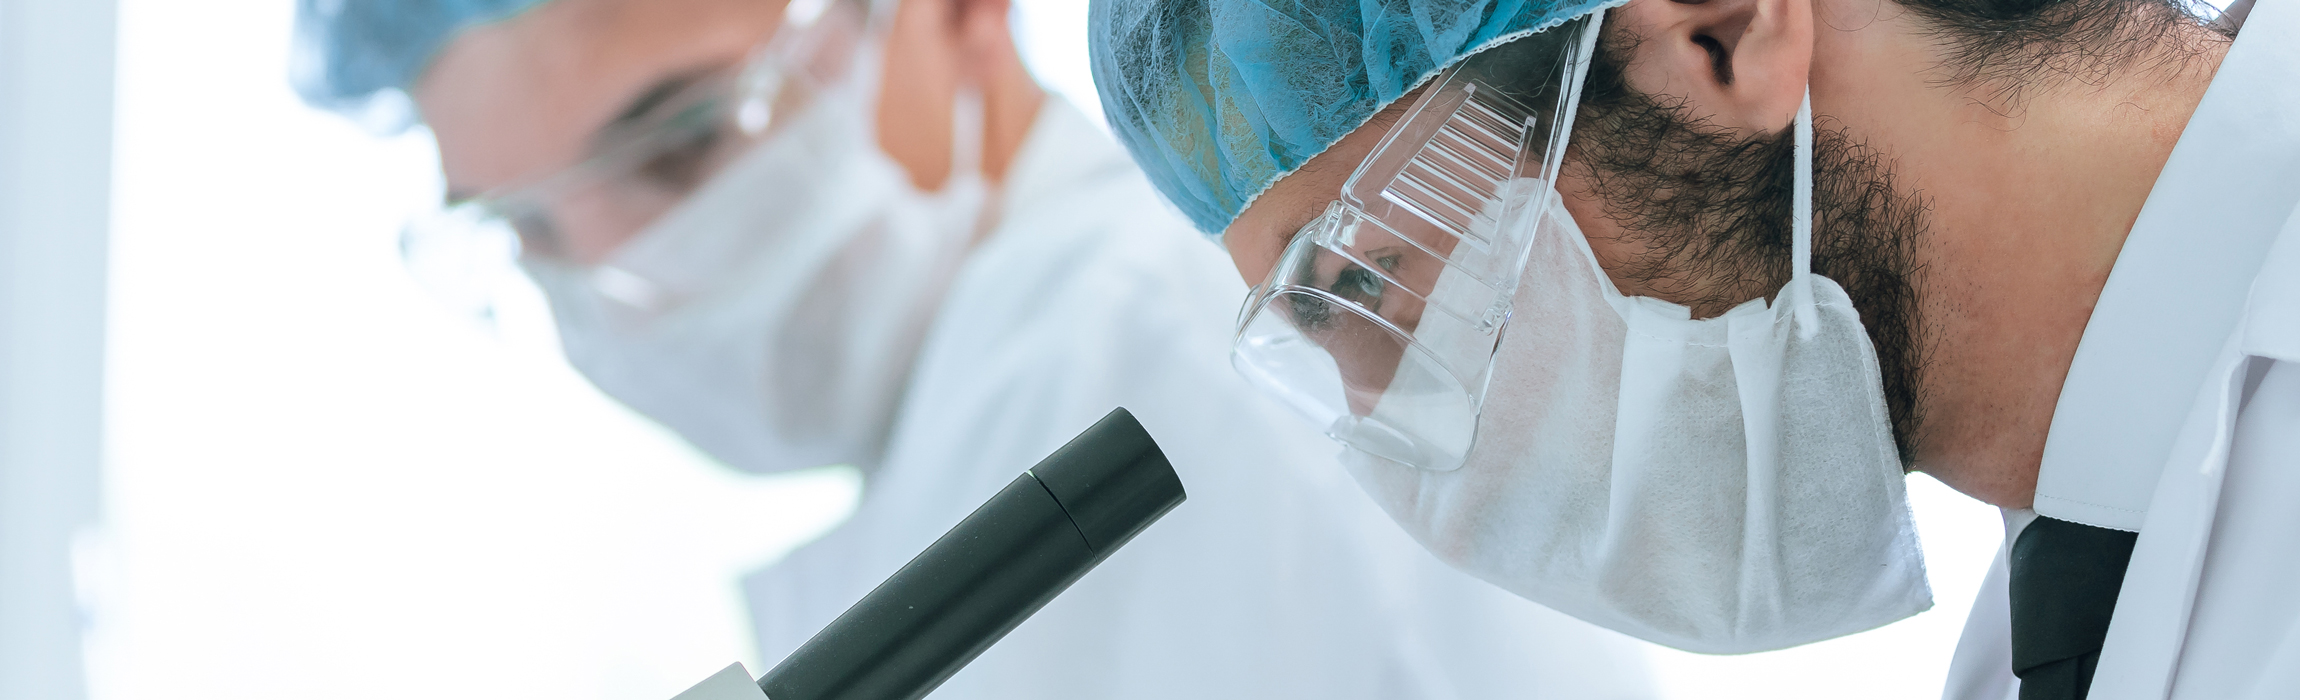 ny-44894467-close-up-a-group-of-scientists-working-on-creating-a